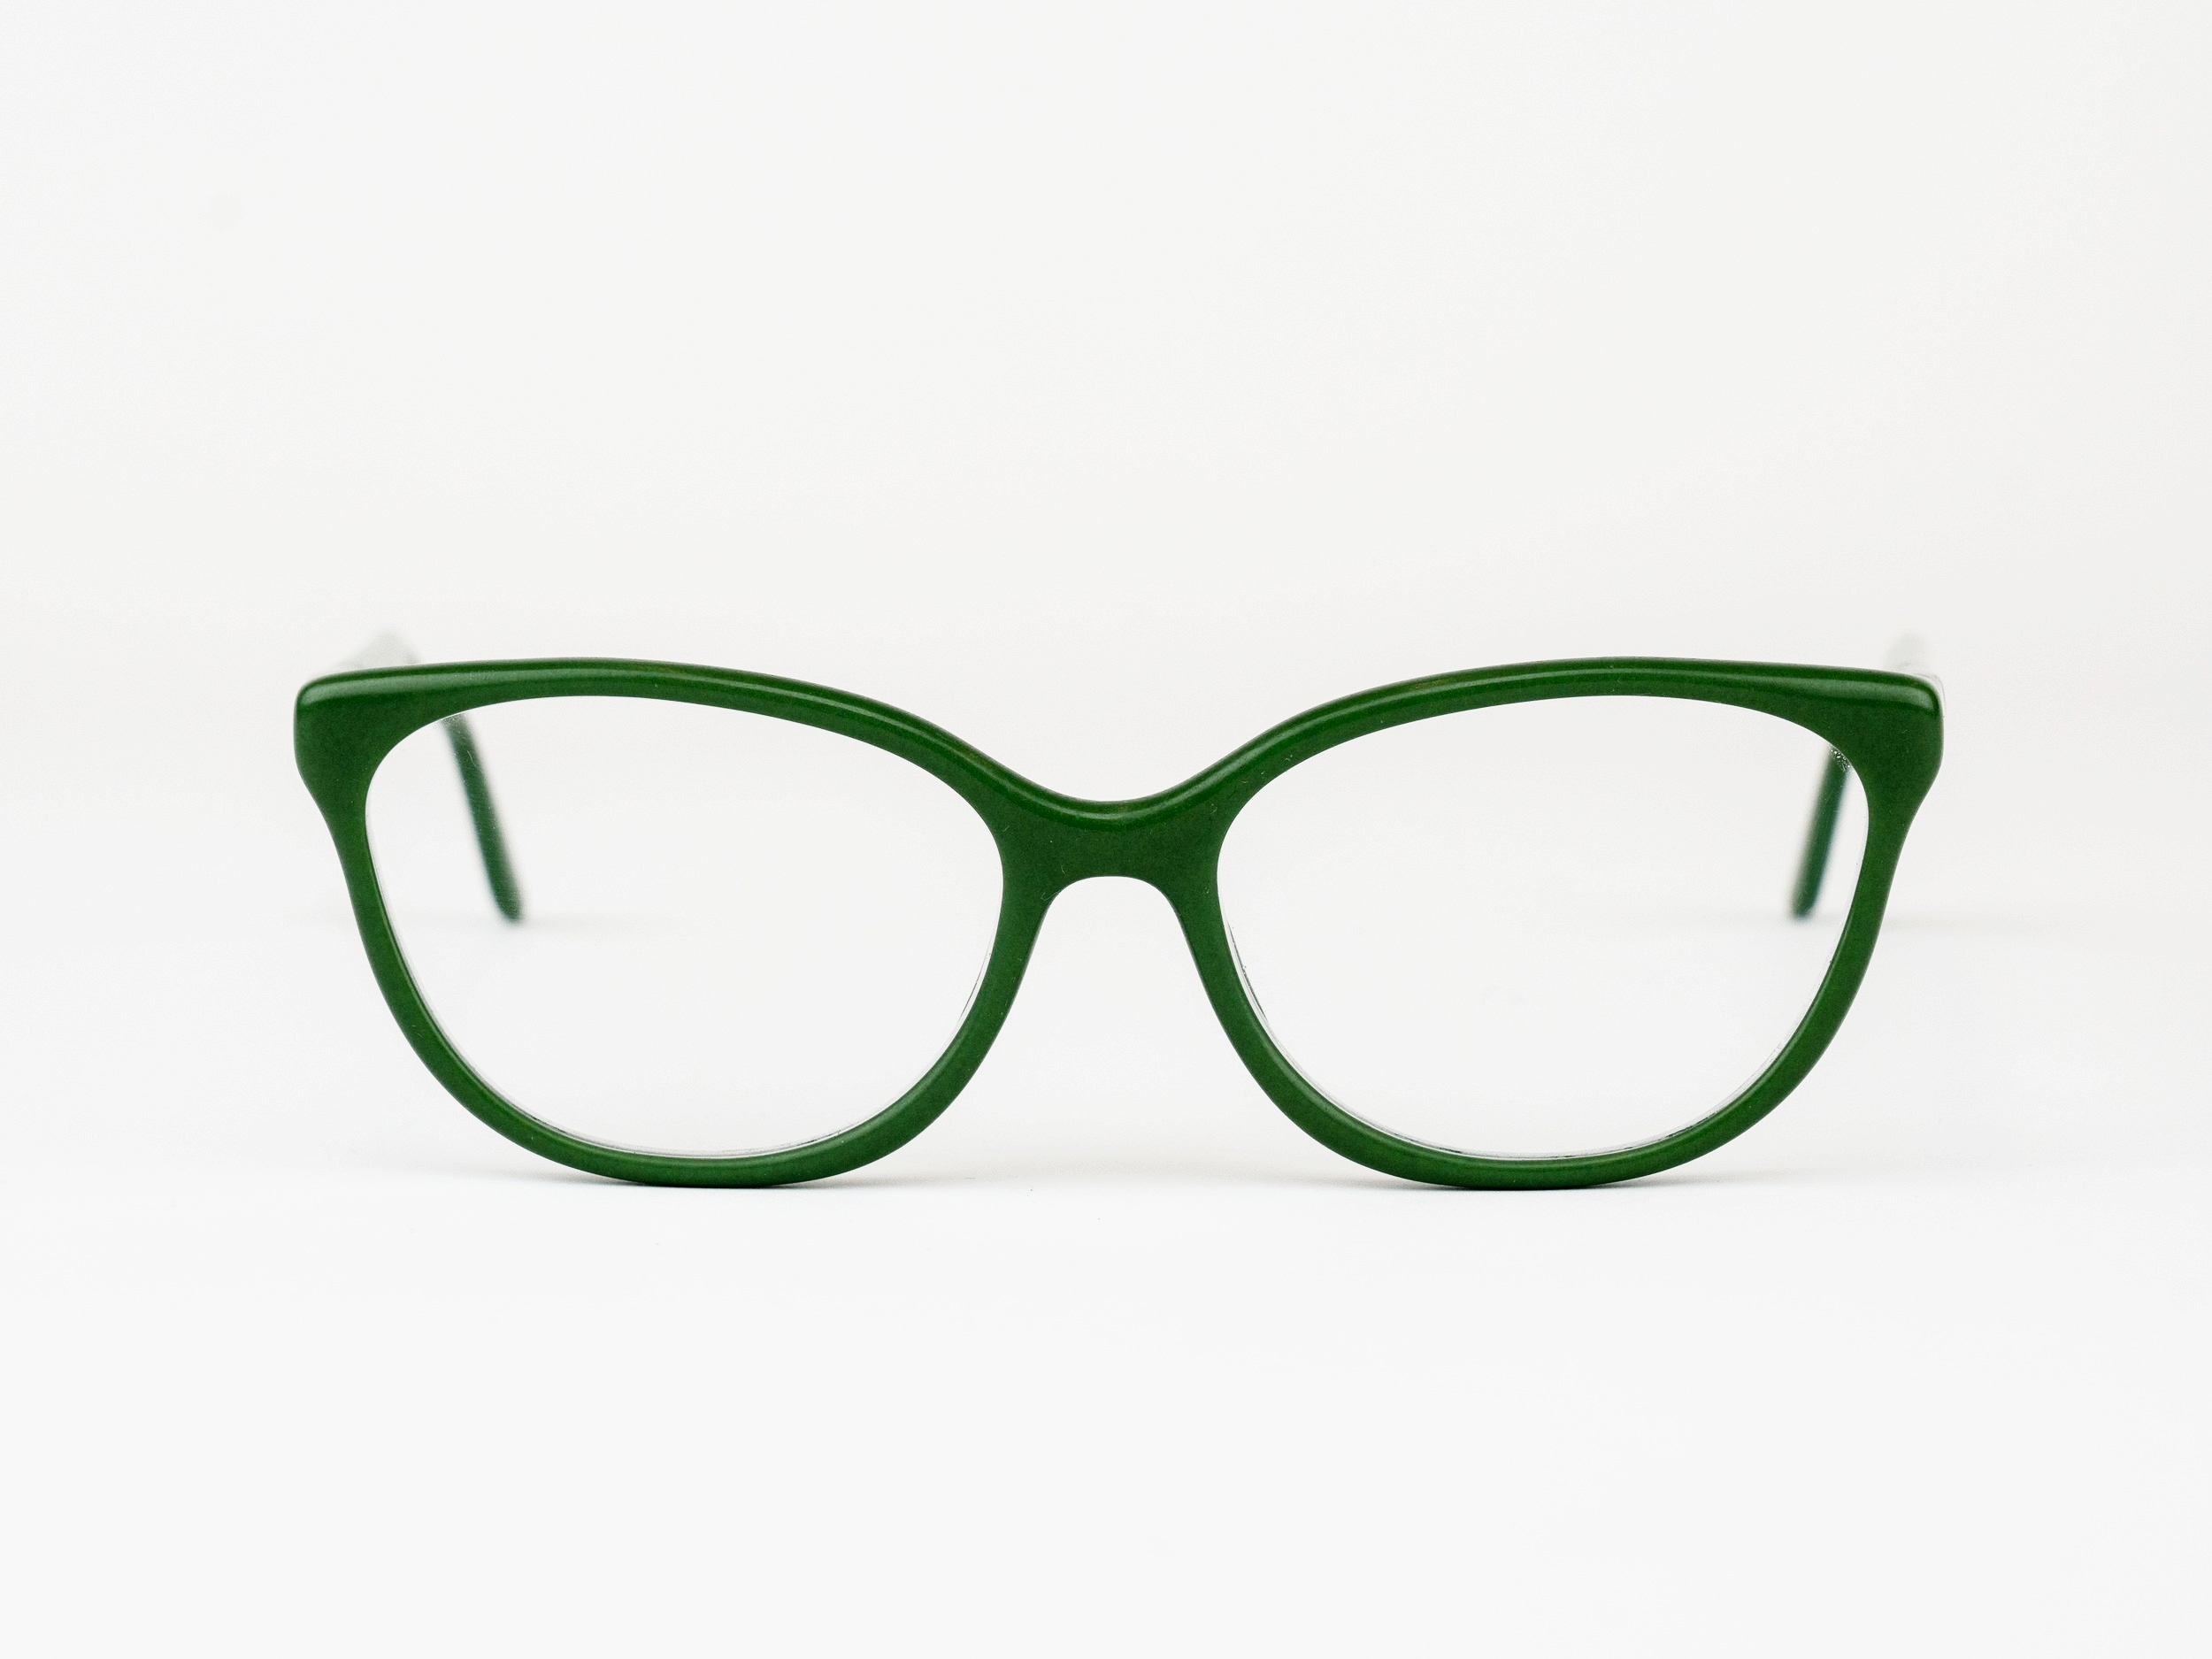 Woolf - For those who write their own story. The Woolf is a classic cateye inspired by the enduring author.Available in any color or pattern that your heart desires.